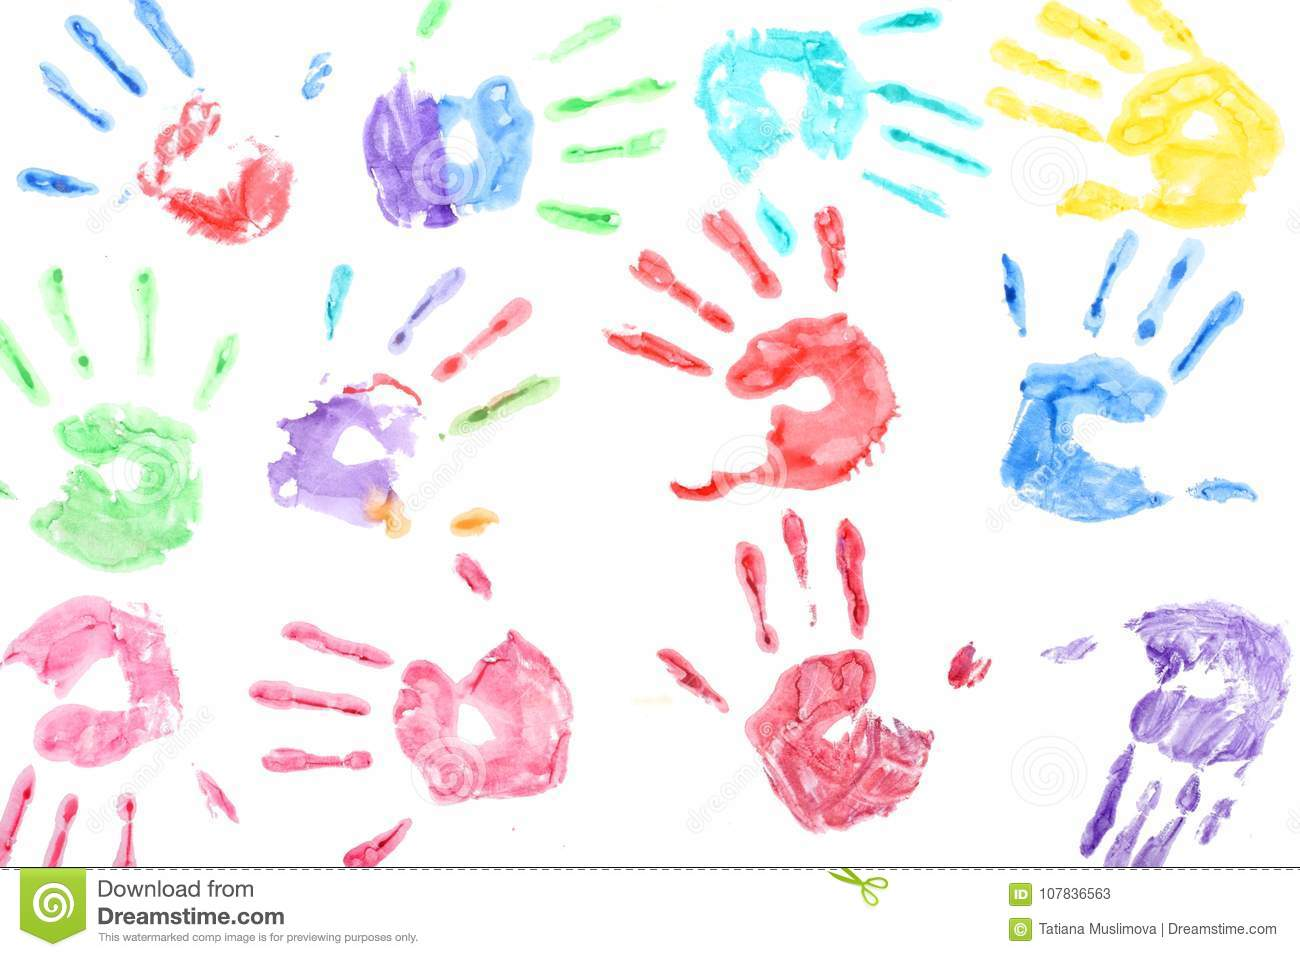 288 059 Kids Background Photos Free Royalty Free Stock Photos From Dreamstime